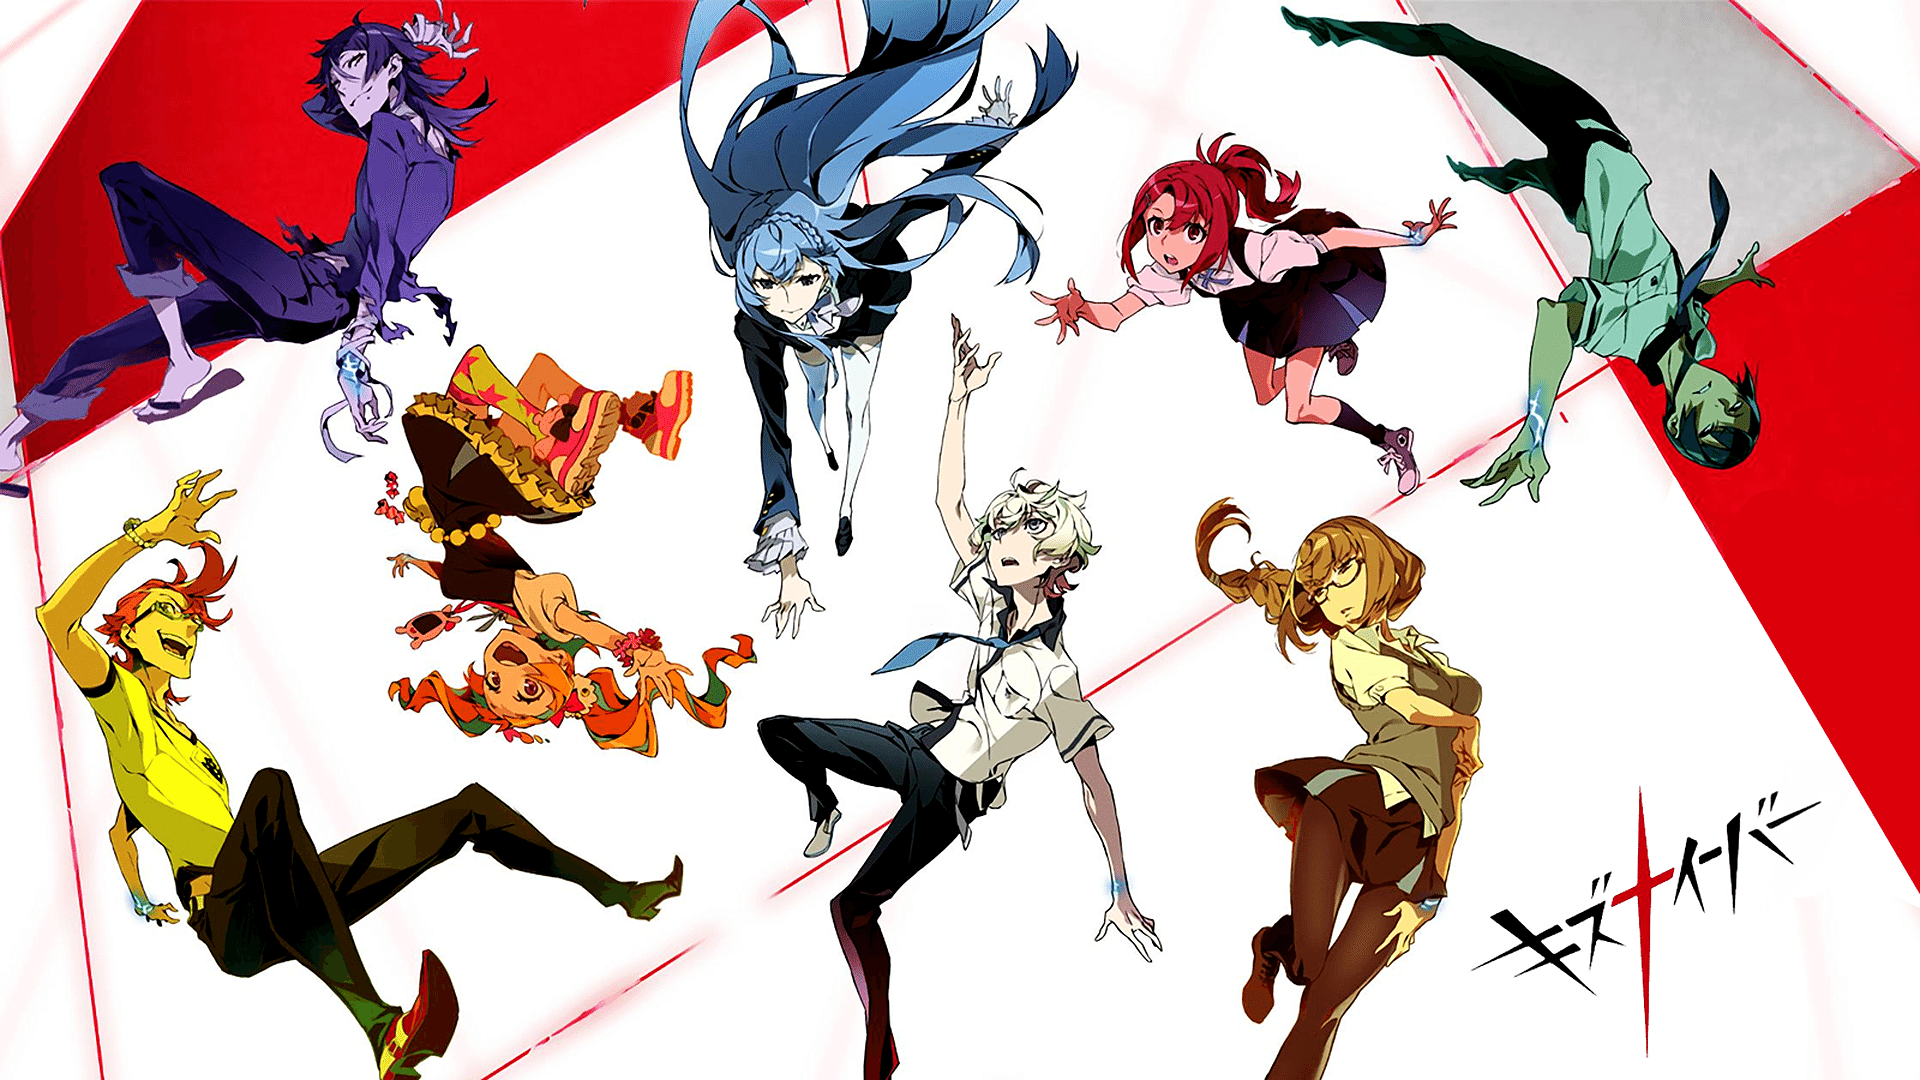 Kiznaiver Mobile Wallpapers Kiznaiver Anime Anime Manga Anime